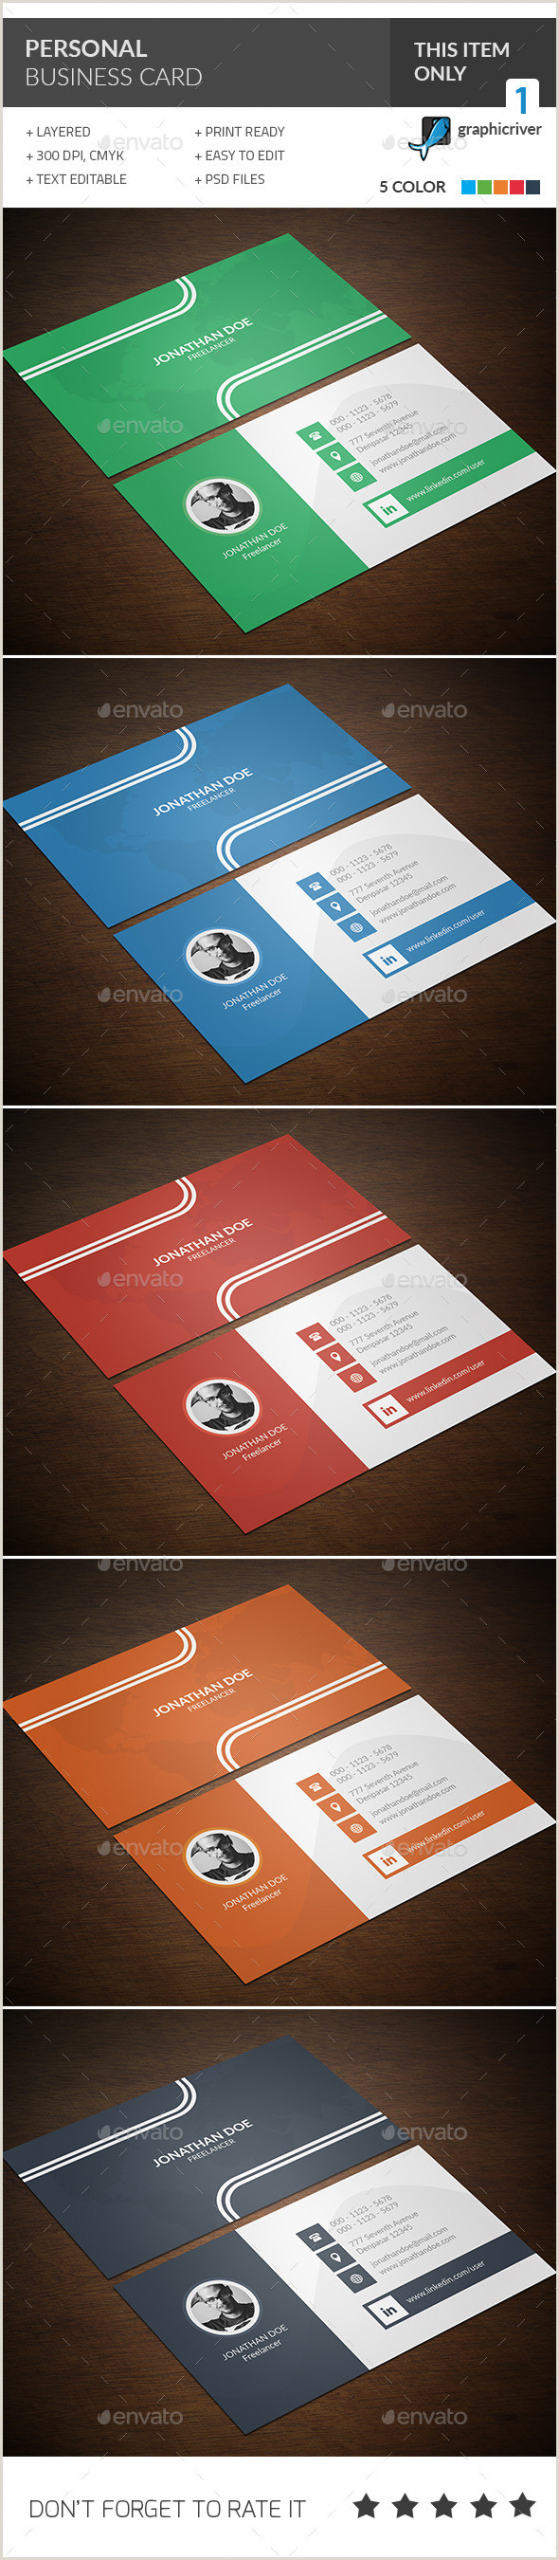 Cheap Personalized Business Cards Personal Business Card Templates & Designs From Graphicriver